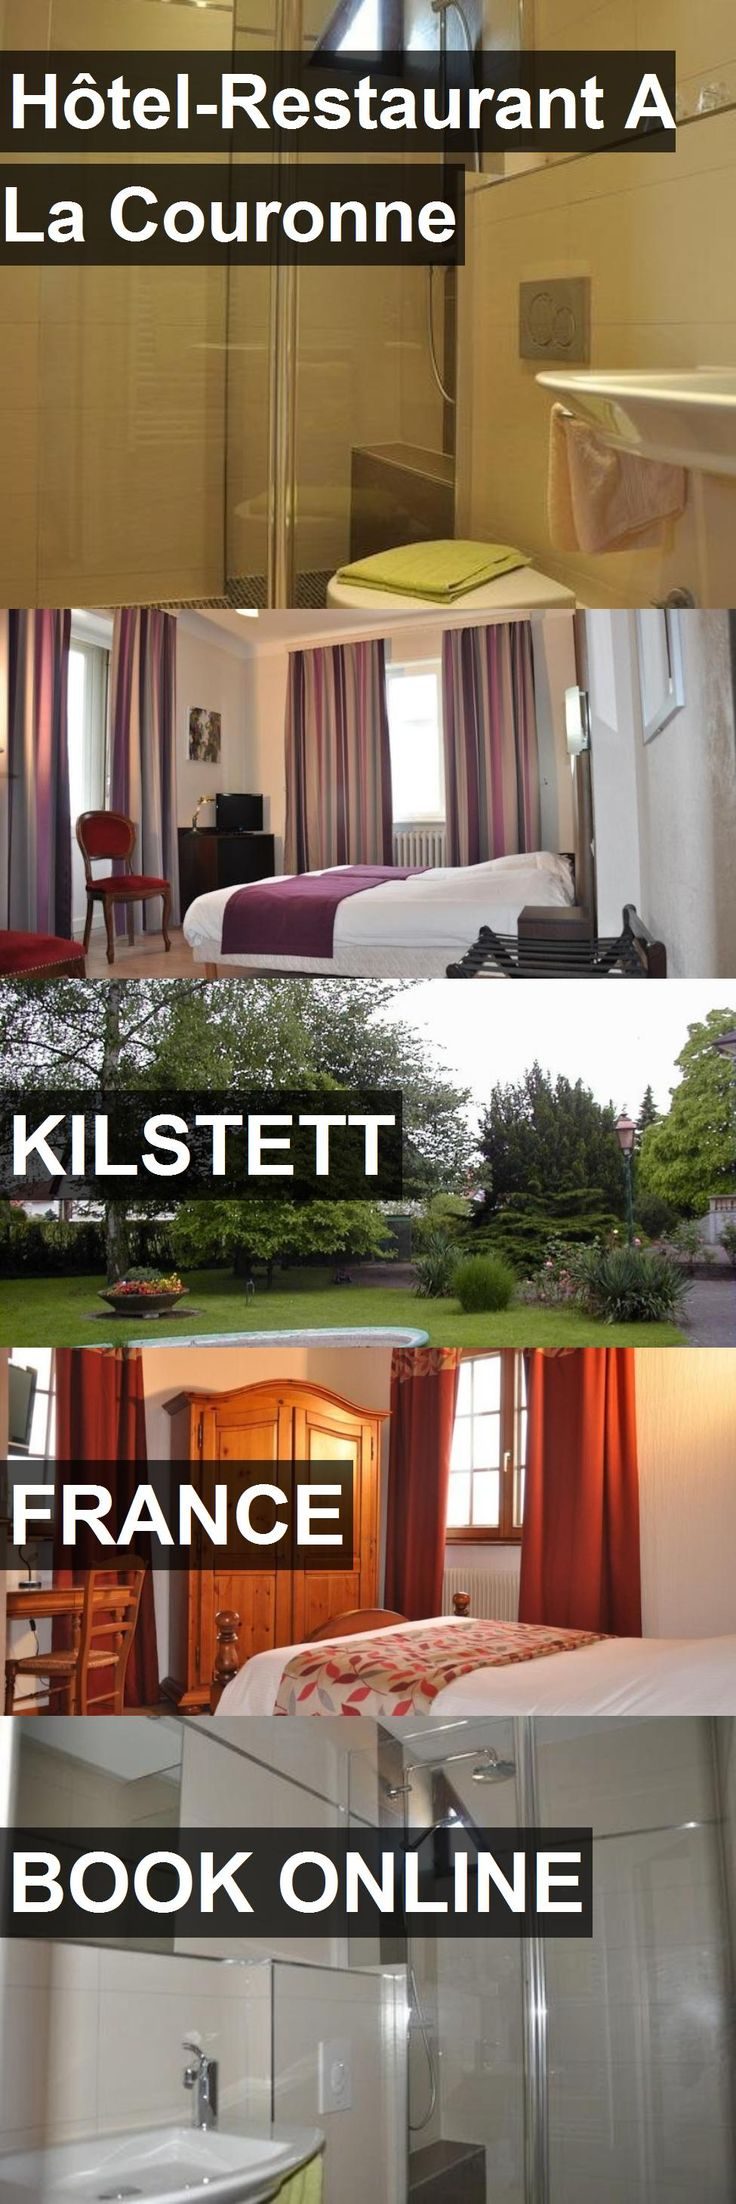 Hotel Hôtel-Restaurant A La Couronne in Kilstett, France. For more information, photos, reviews and best prices please follow the link. #France #Kilstett #travel #vacation #hotel